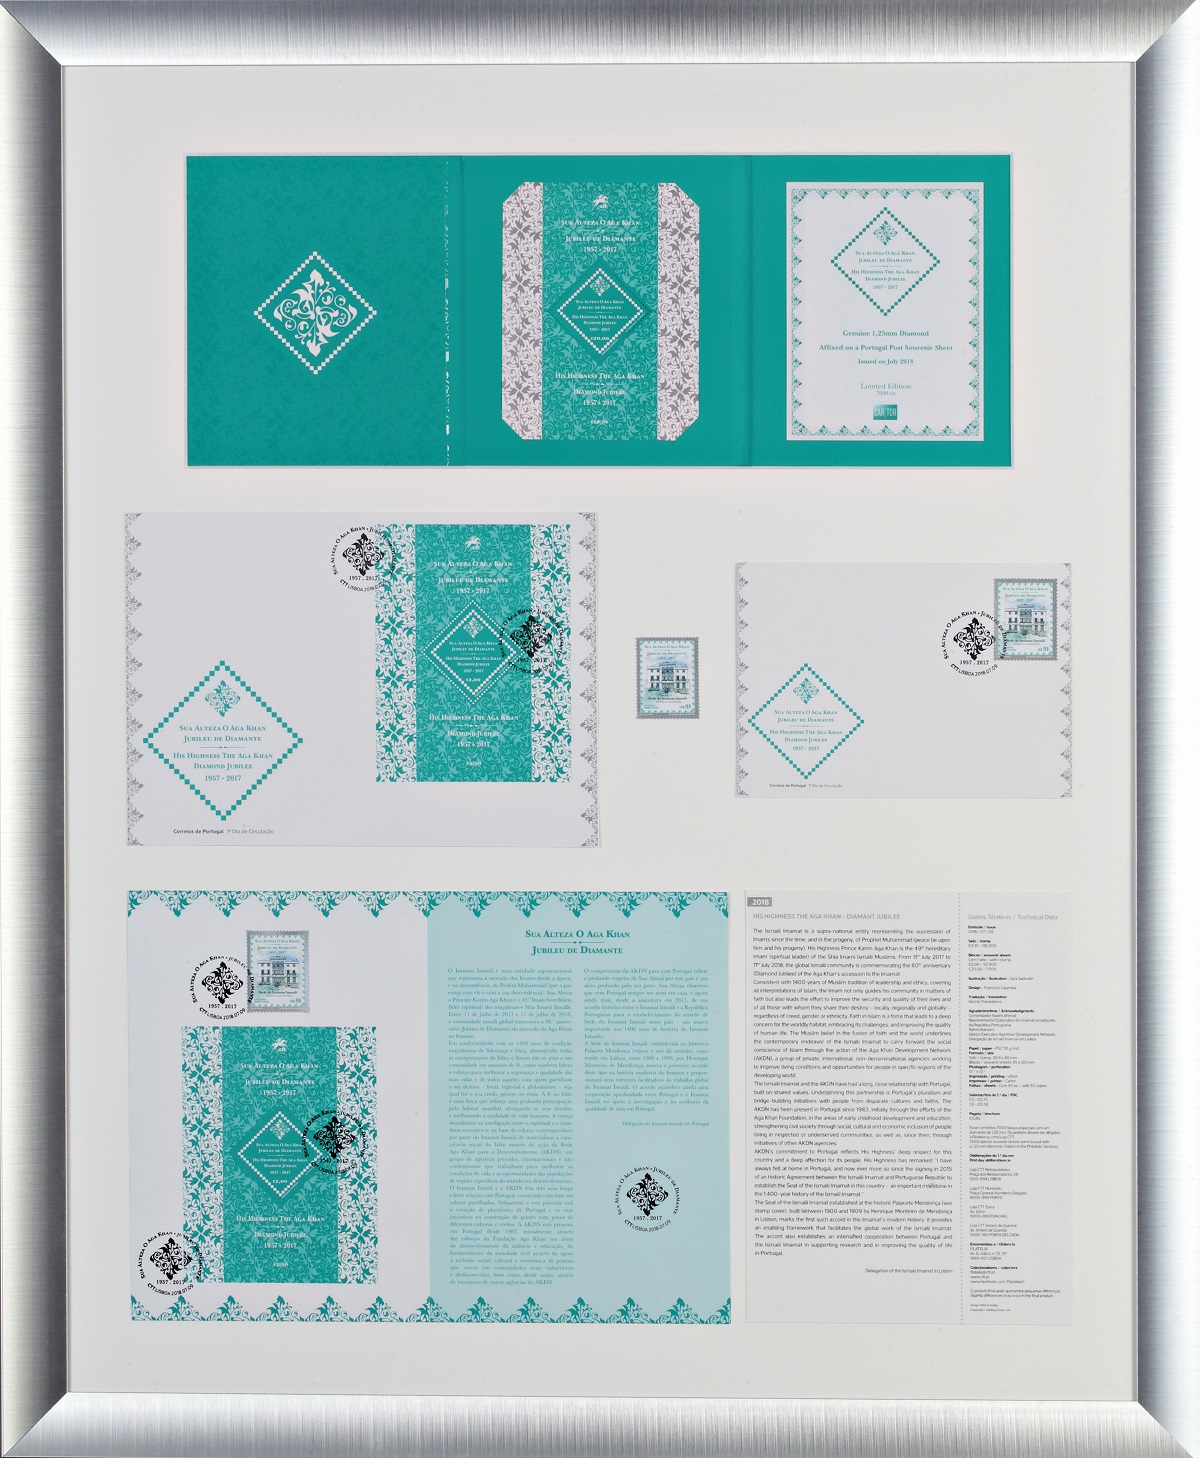 Calling All Canadian Ismailis: A Beautiful and Unique Frame of Philatelic Objects Honouring Mawlana Hazar Imam, His Highness the Aga Khan